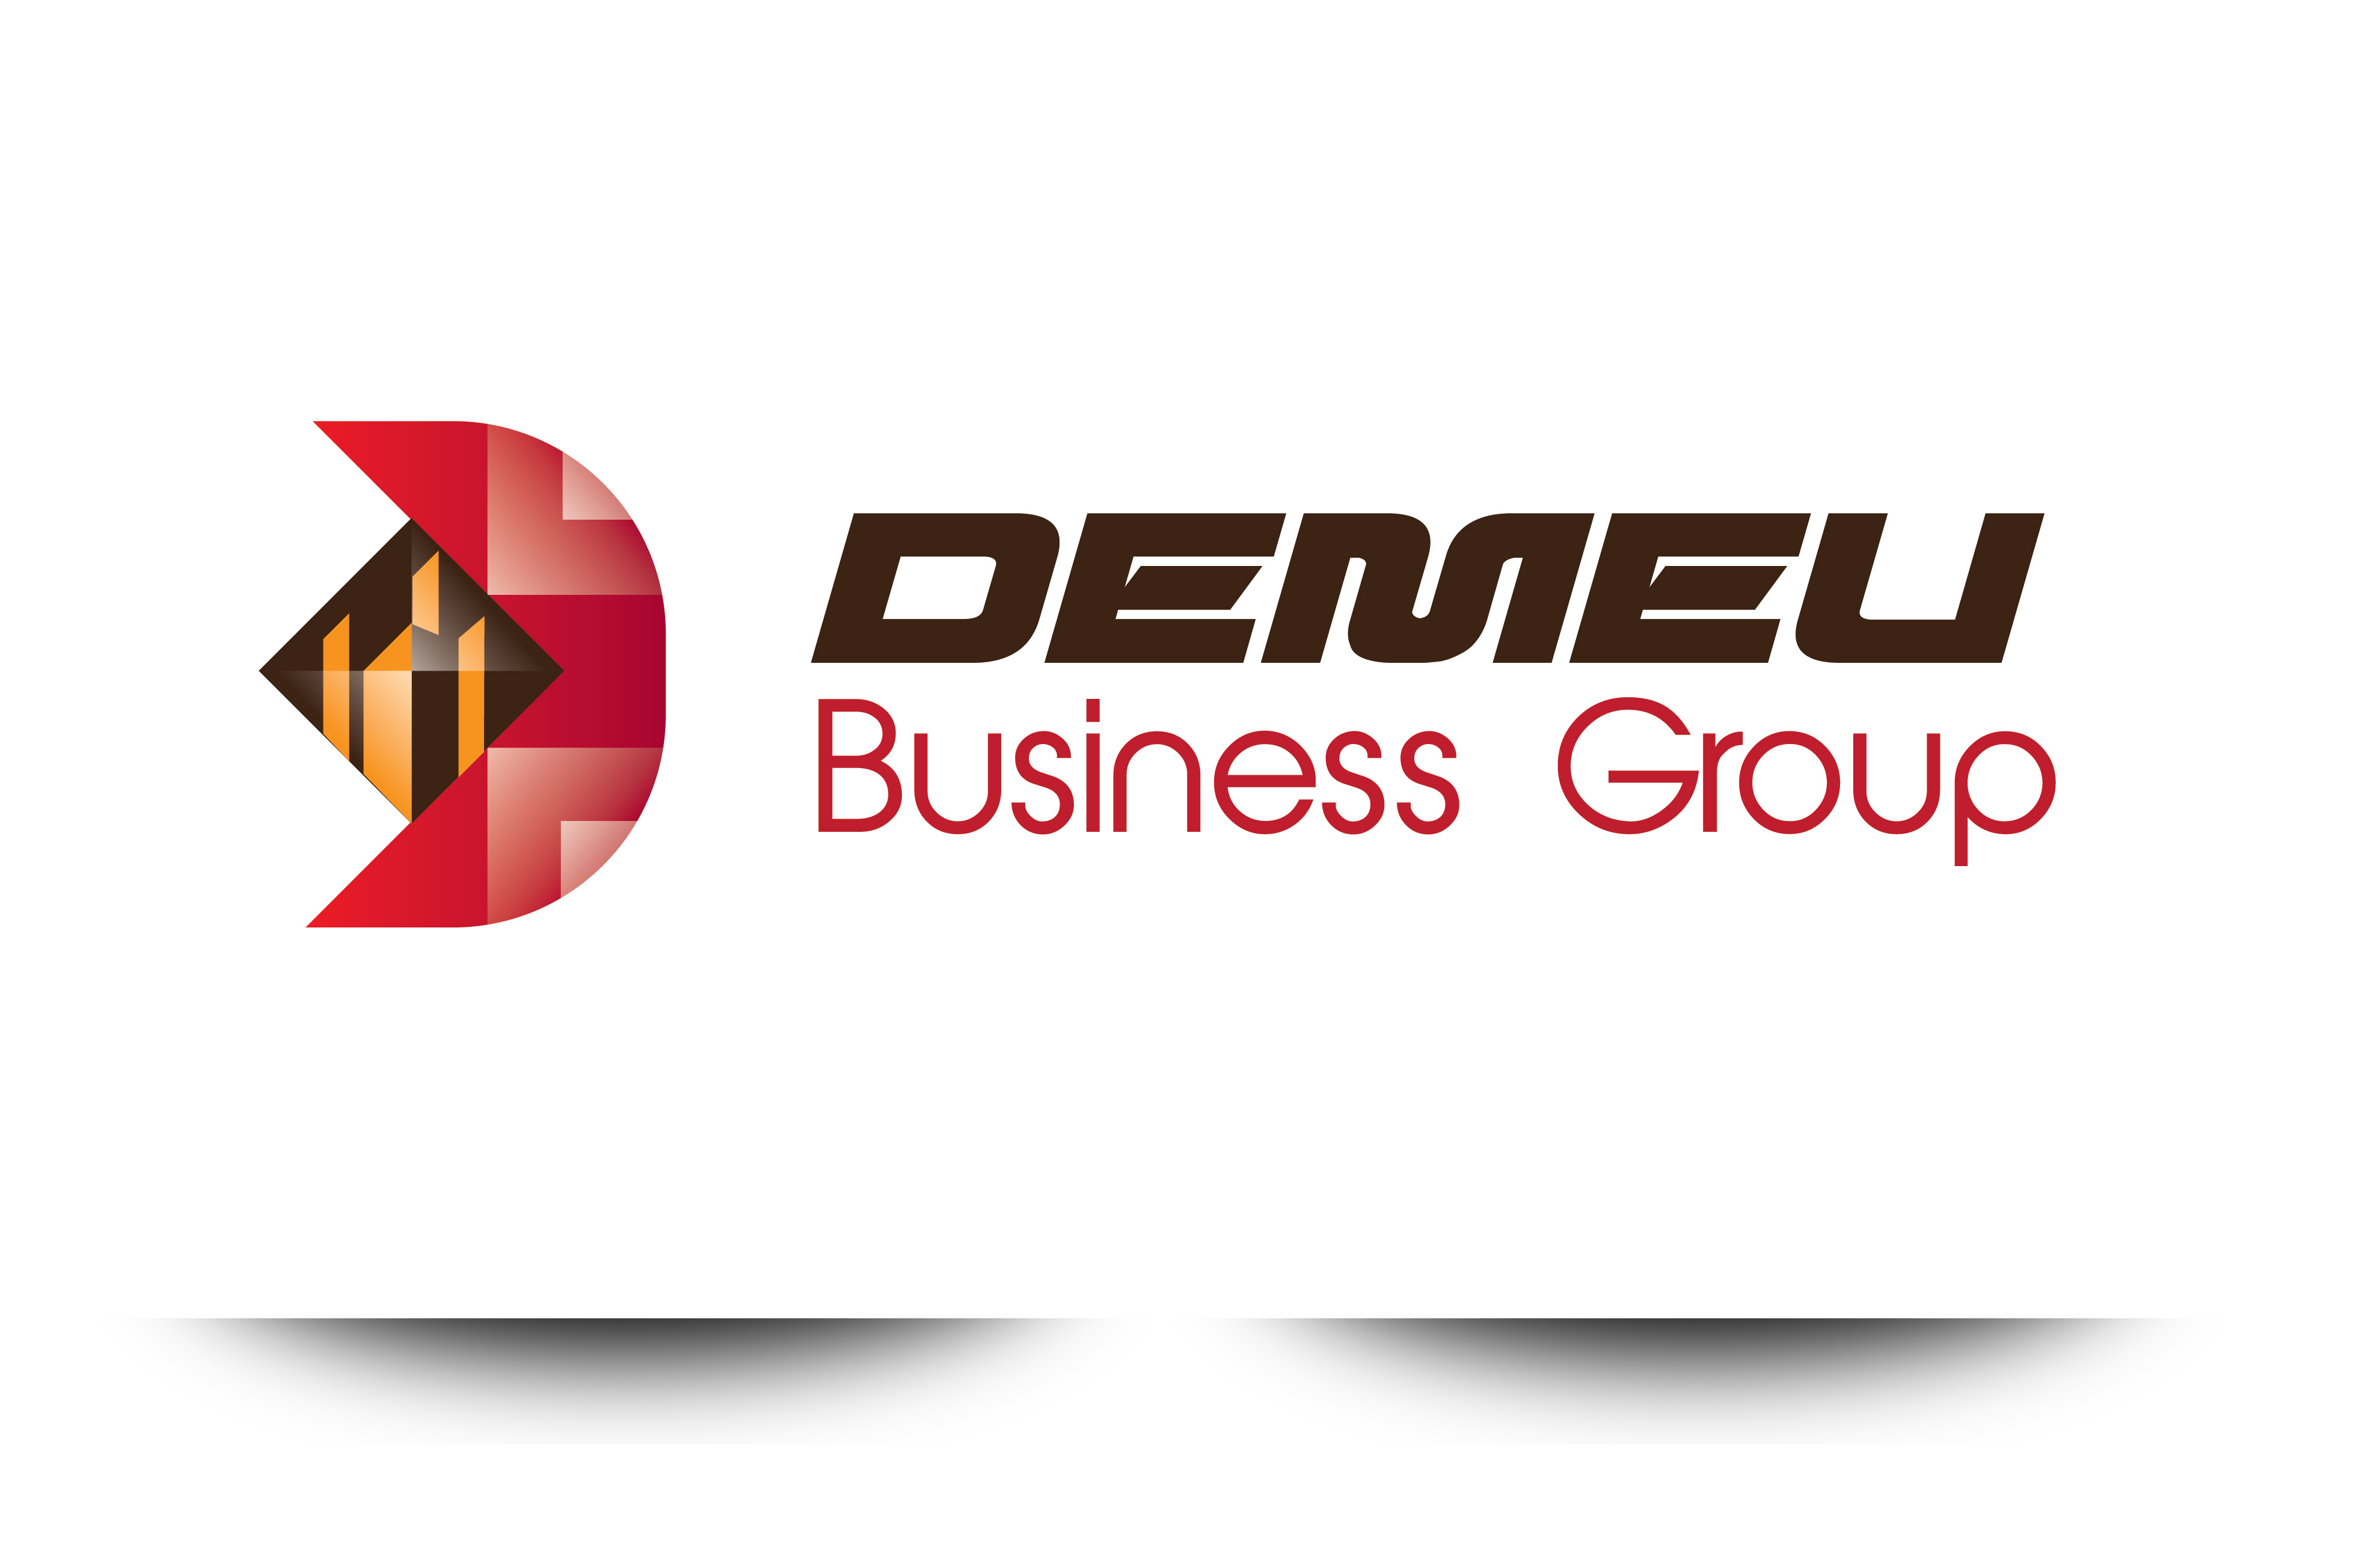 Logo Design by demang - Entry No. 42 in the Logo Design Contest Captivating Logo Design for DEMEU Business Group.